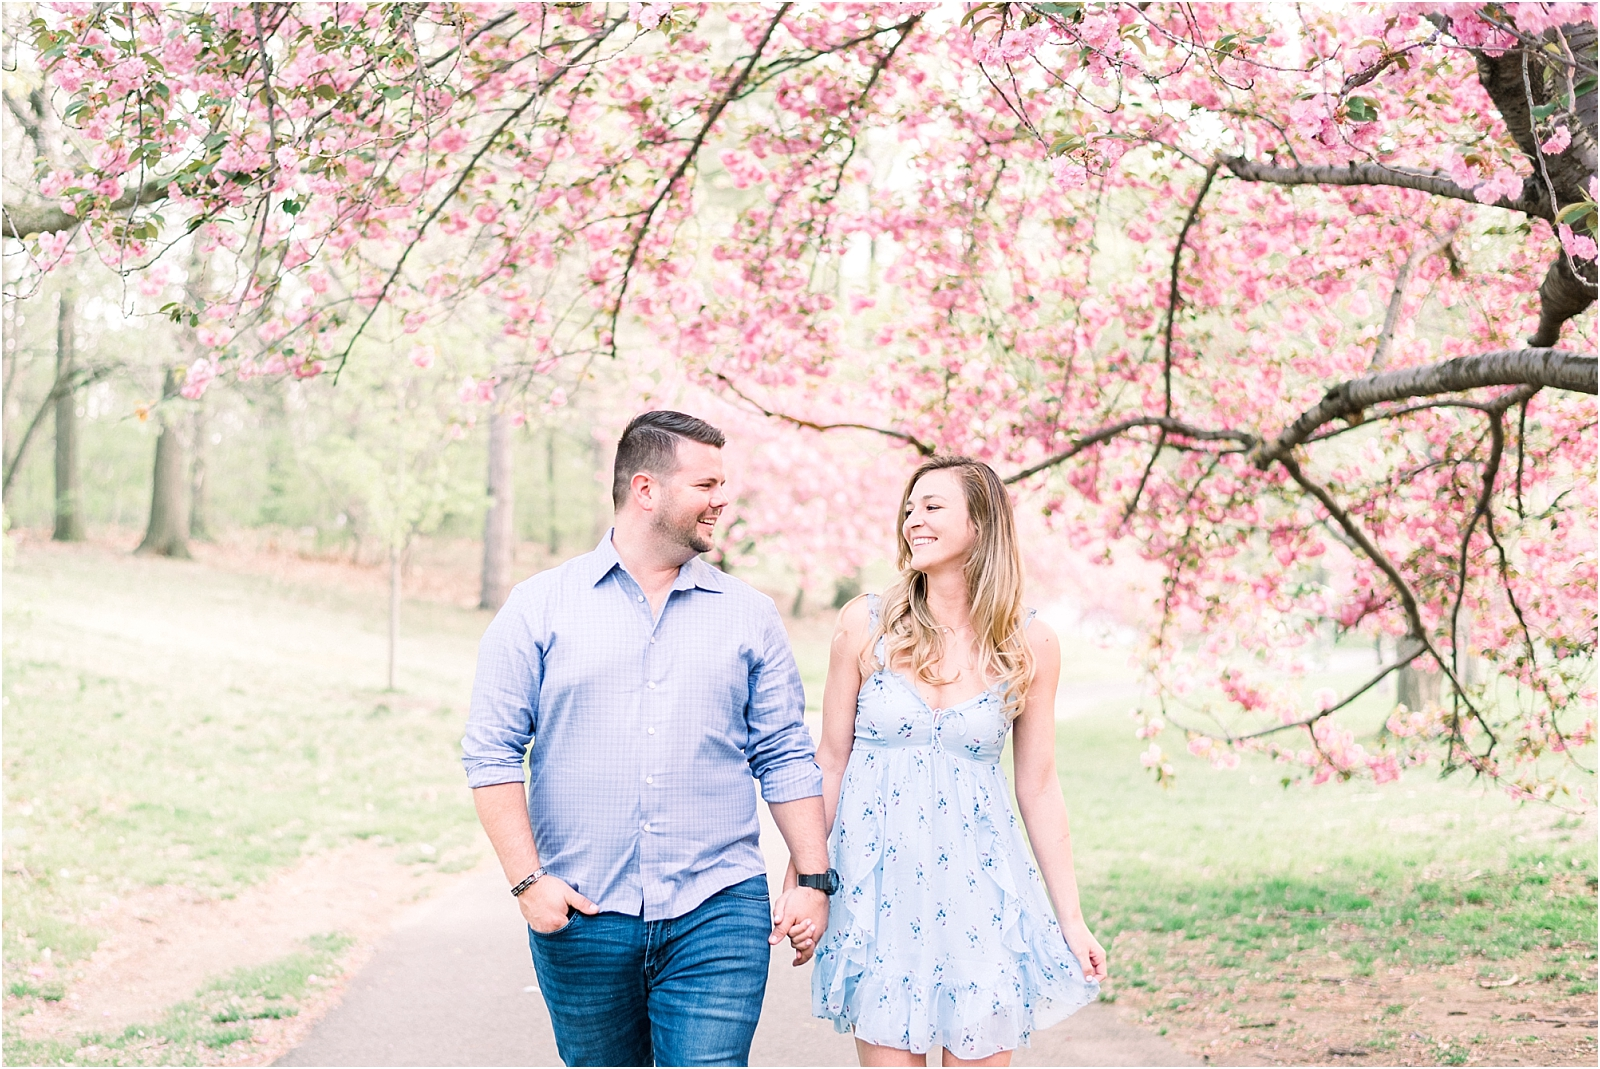 MT_branch_brook_park_engagement_session (3).jpg